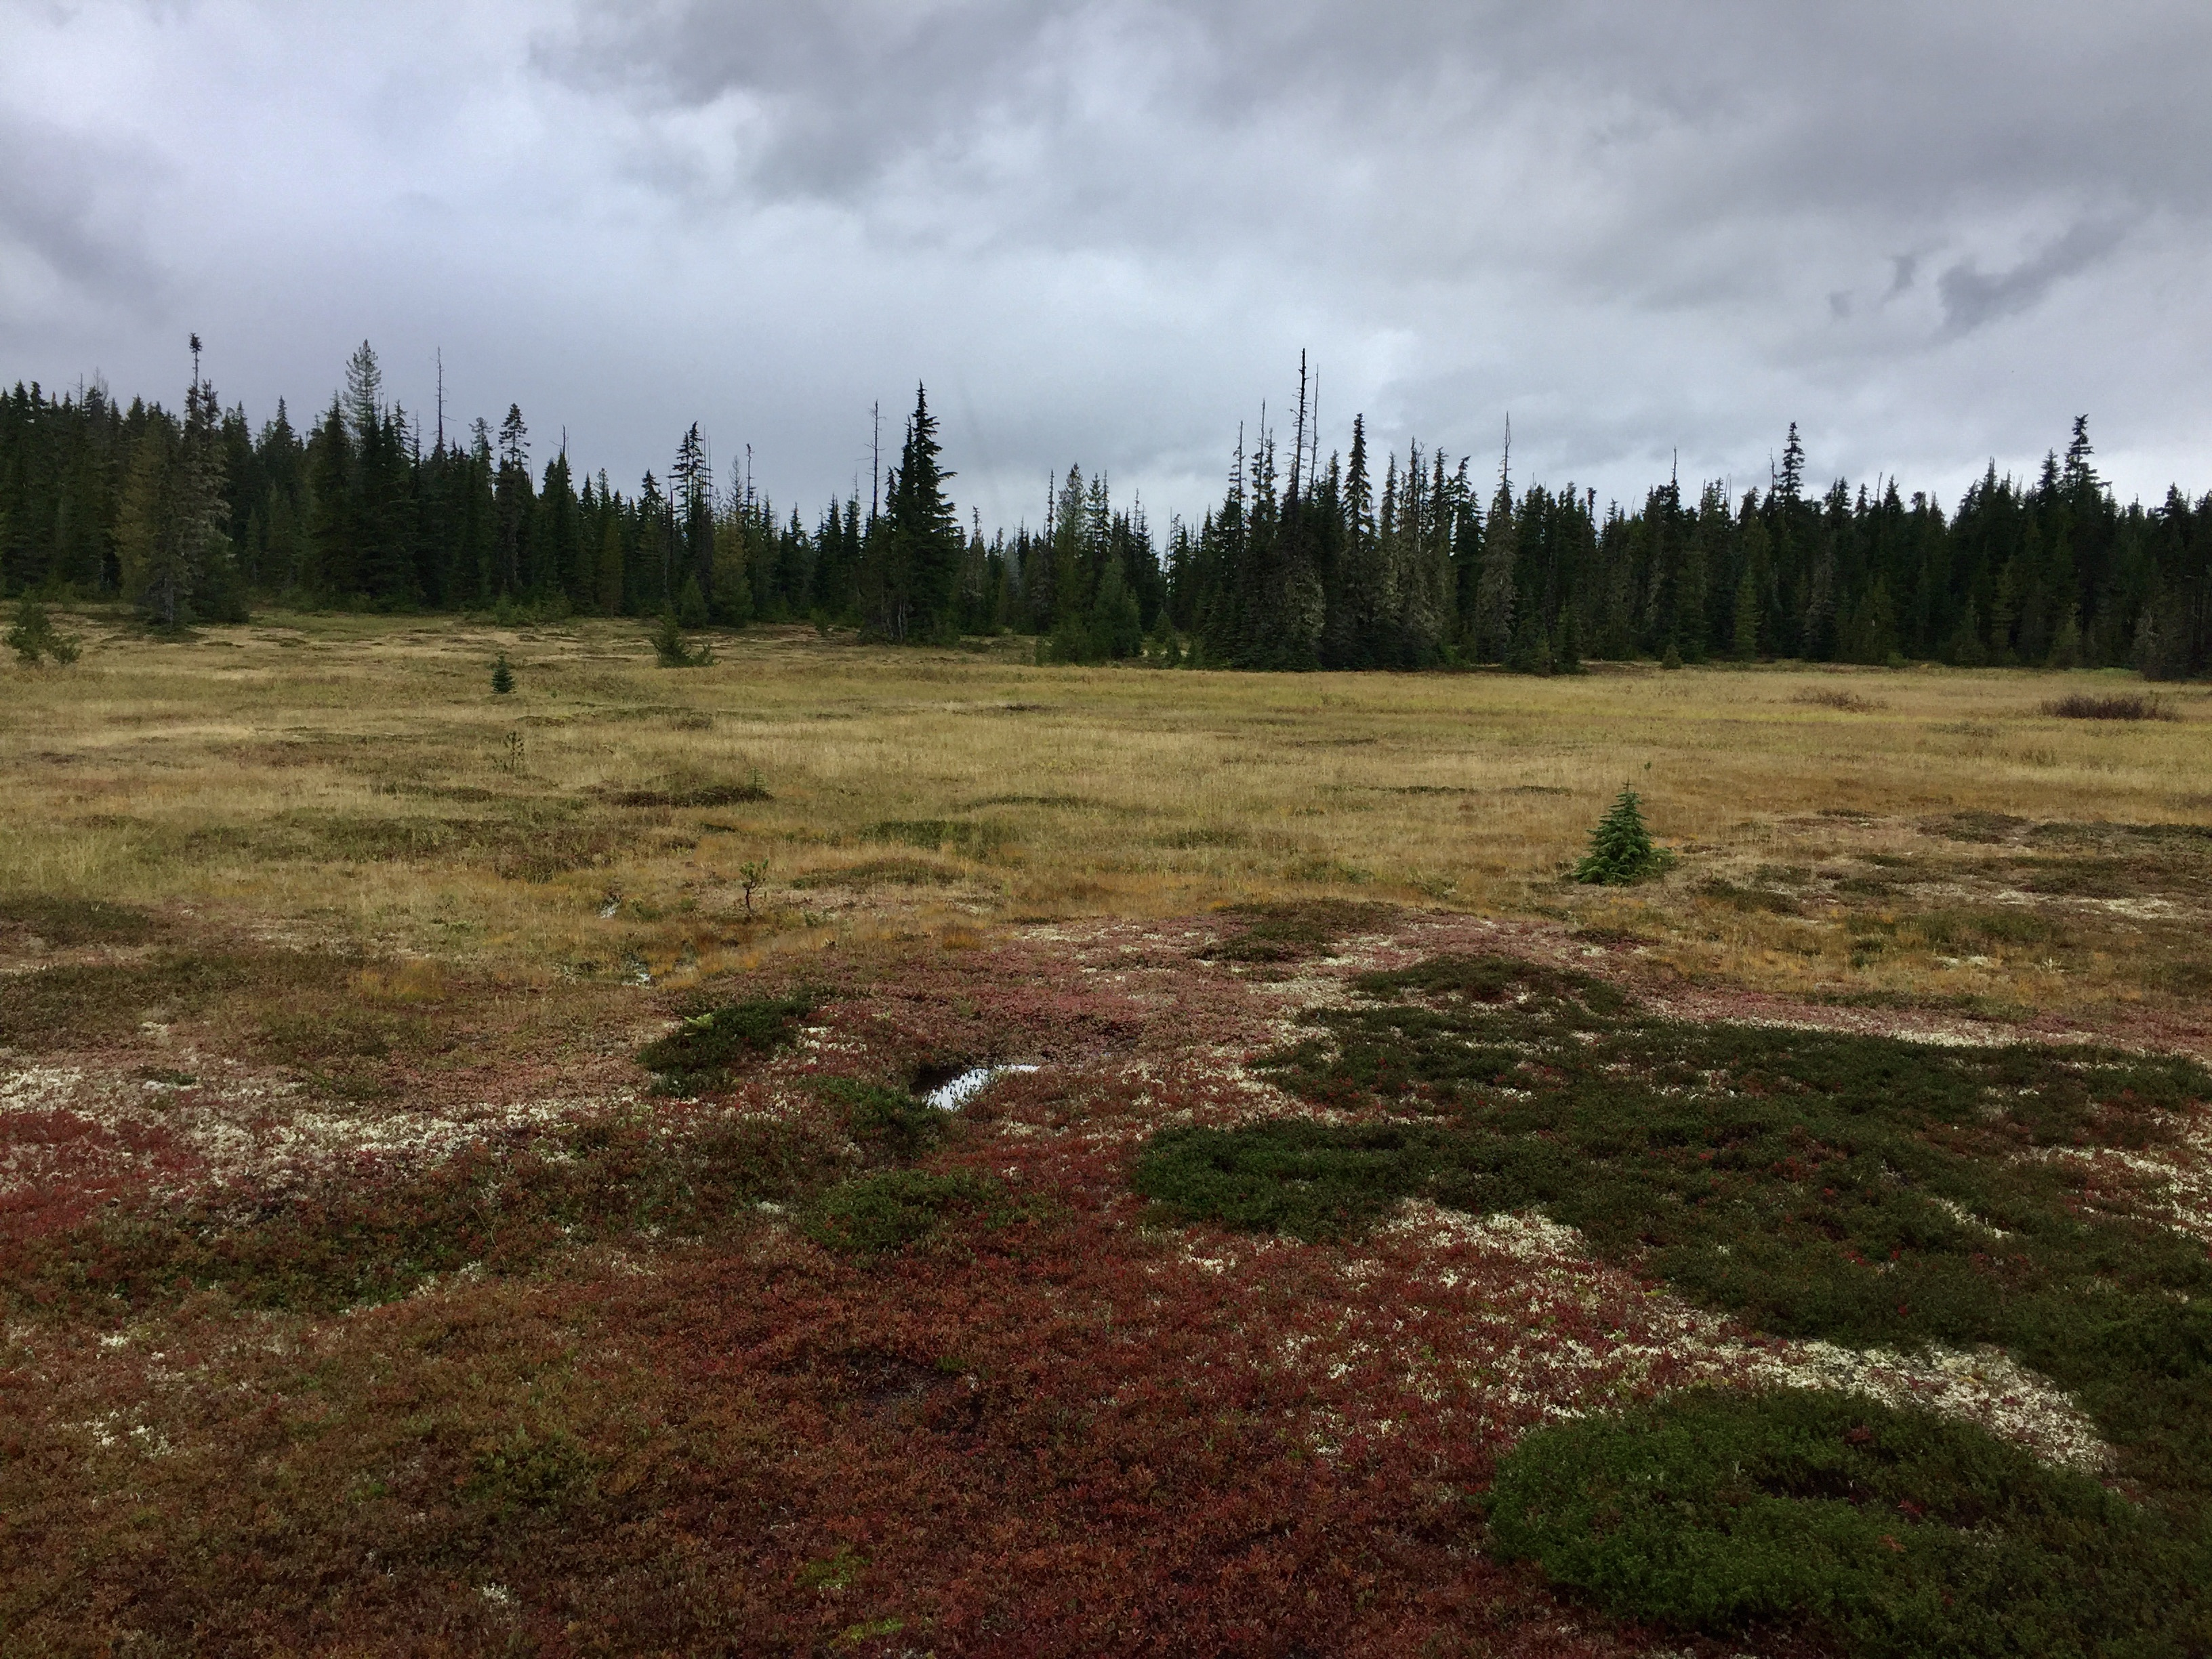 September, 2020 - Vancouver Island, British Columbia - Strathcona Provincial Park - Forbidden Plateau - Alpine meadow